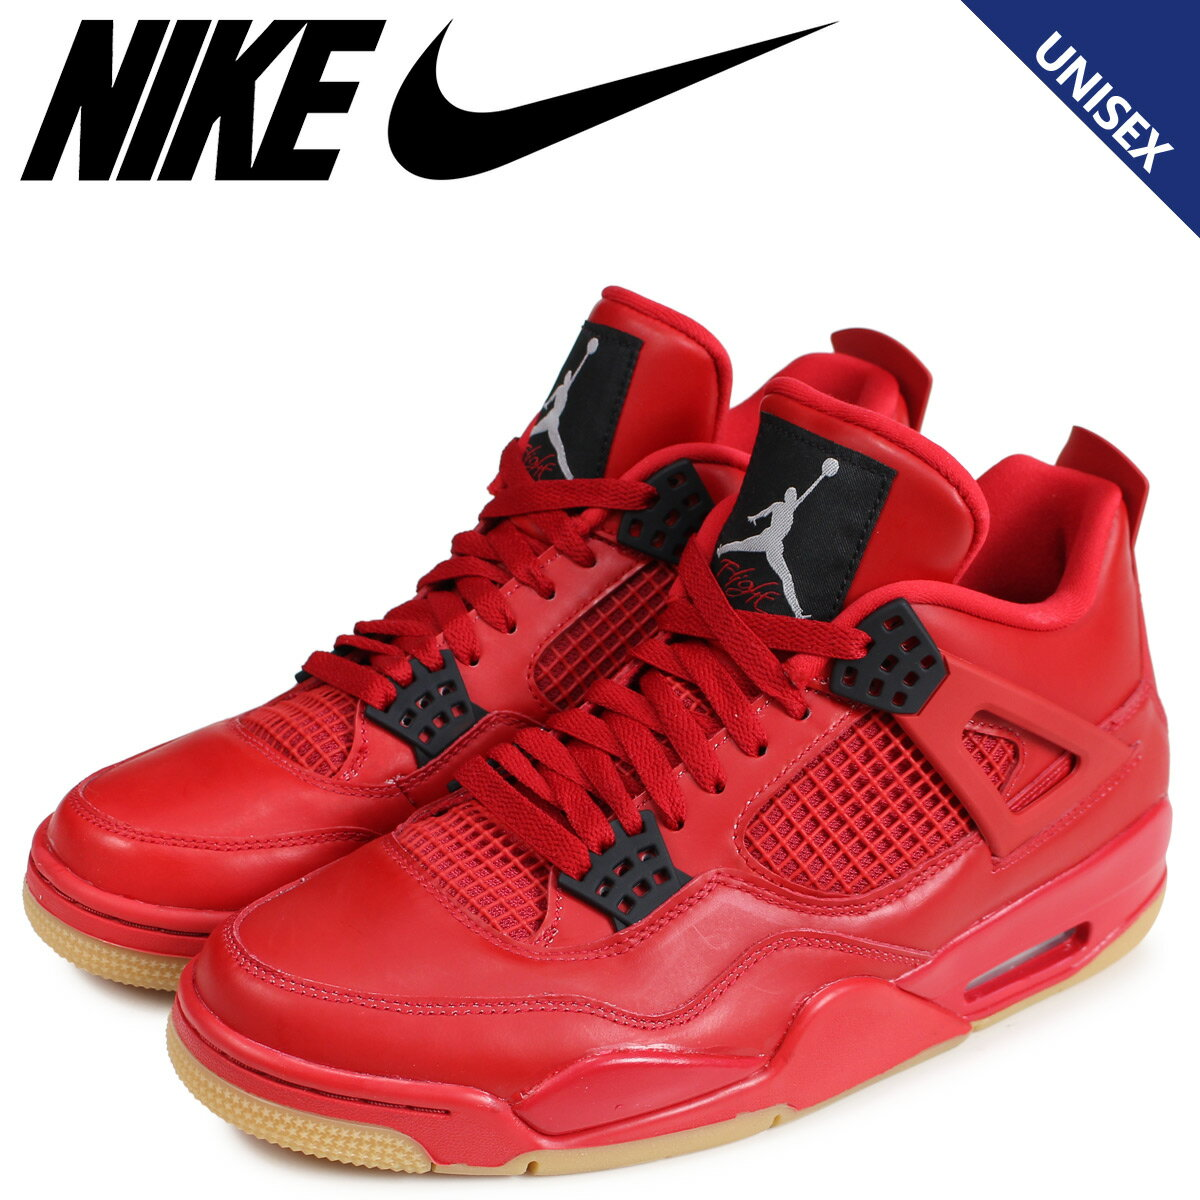 メンズ靴, スニーカー NIKE 4 WMNS AIR JORDAN 4 RETRO NRG SINGLES DAY AV3914-600